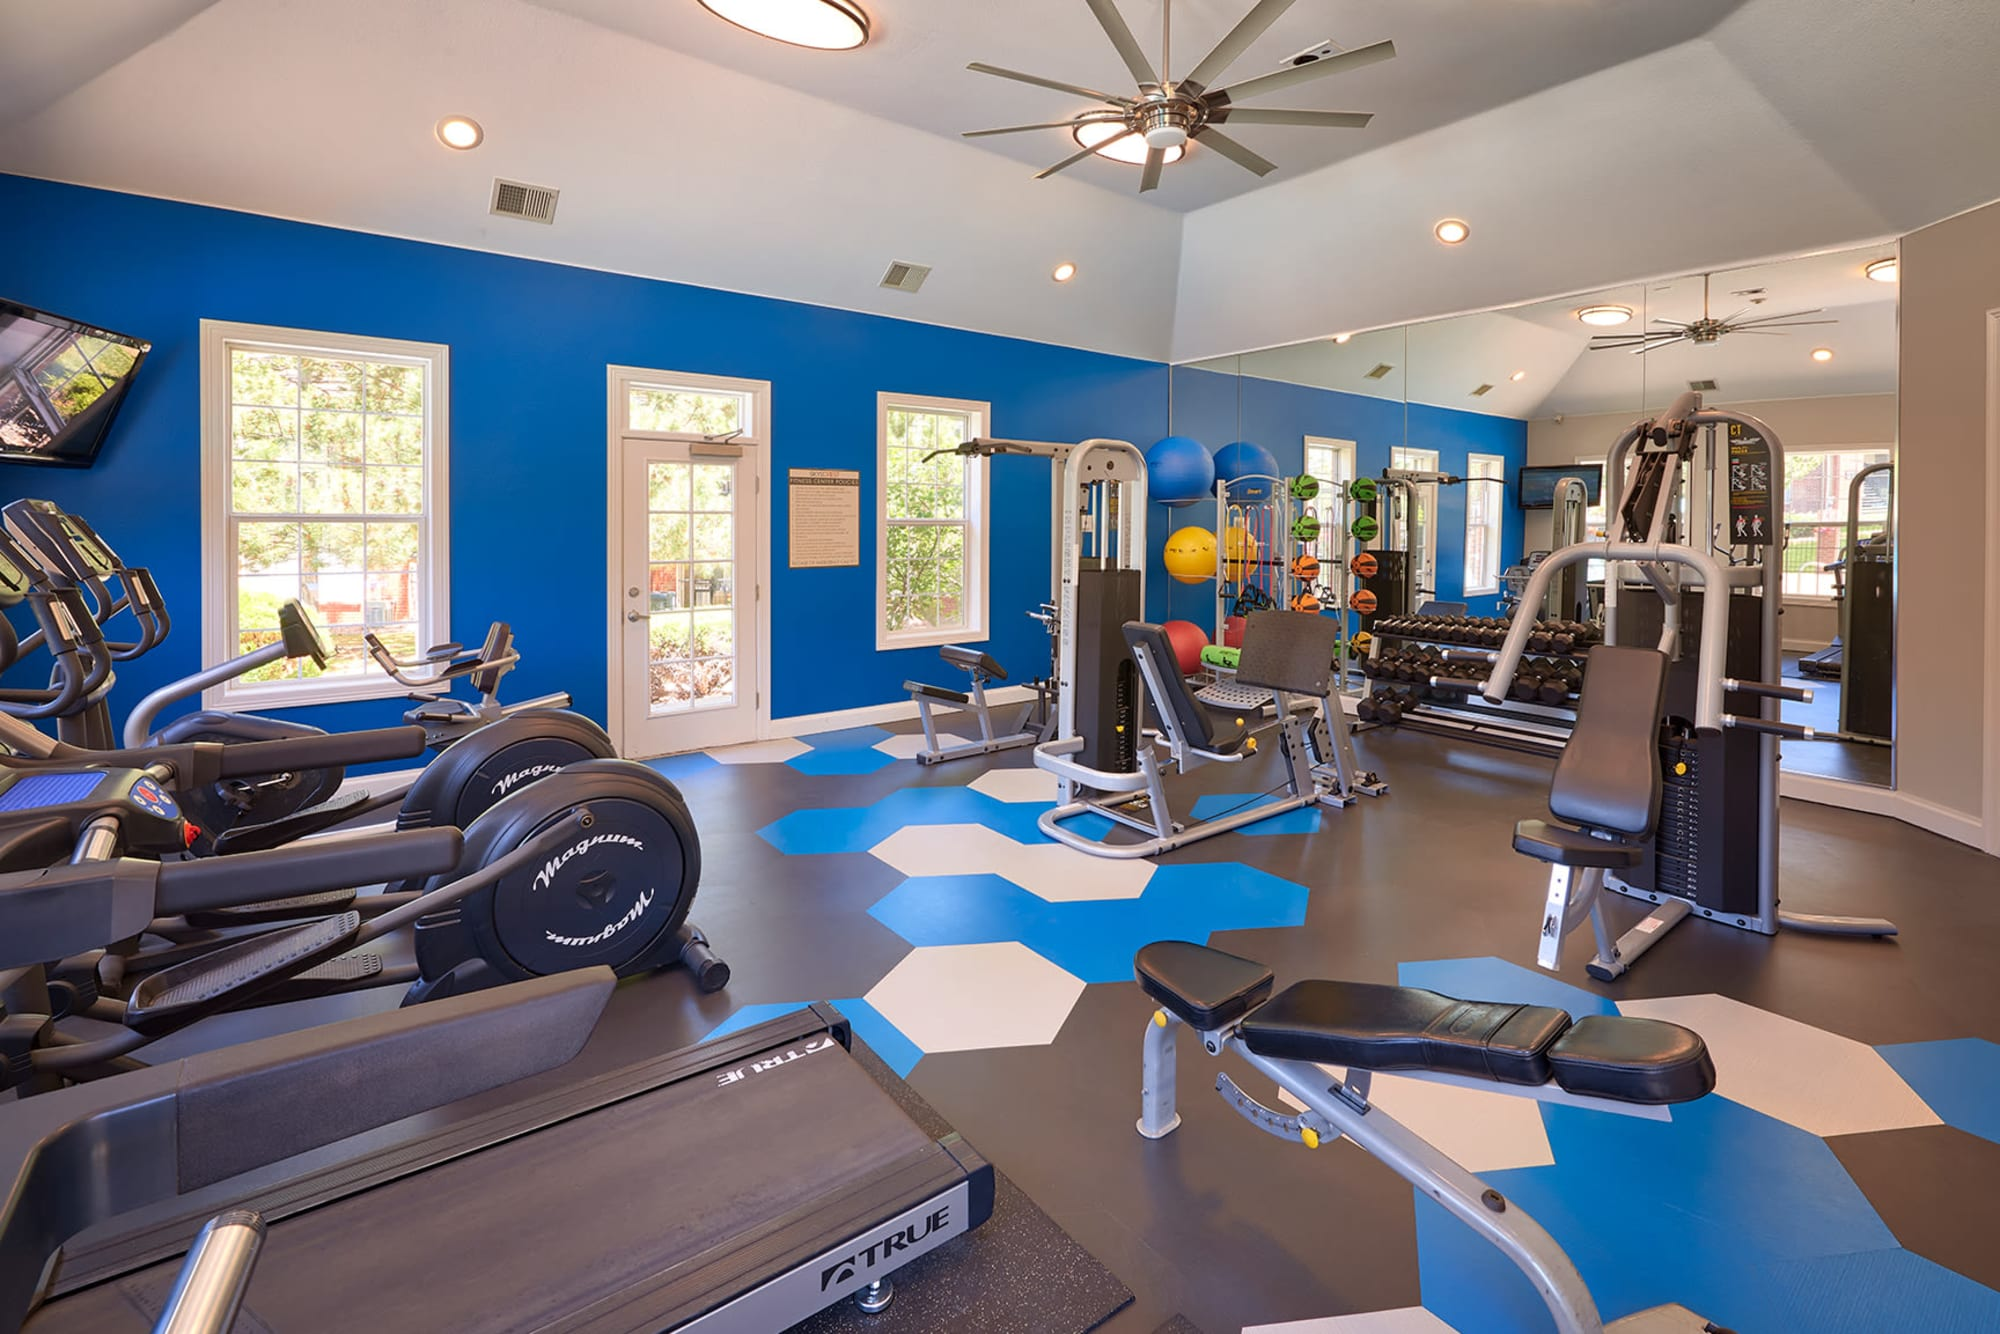 Fitness center at Skyecrest Apartments in Lakewood, Colorado